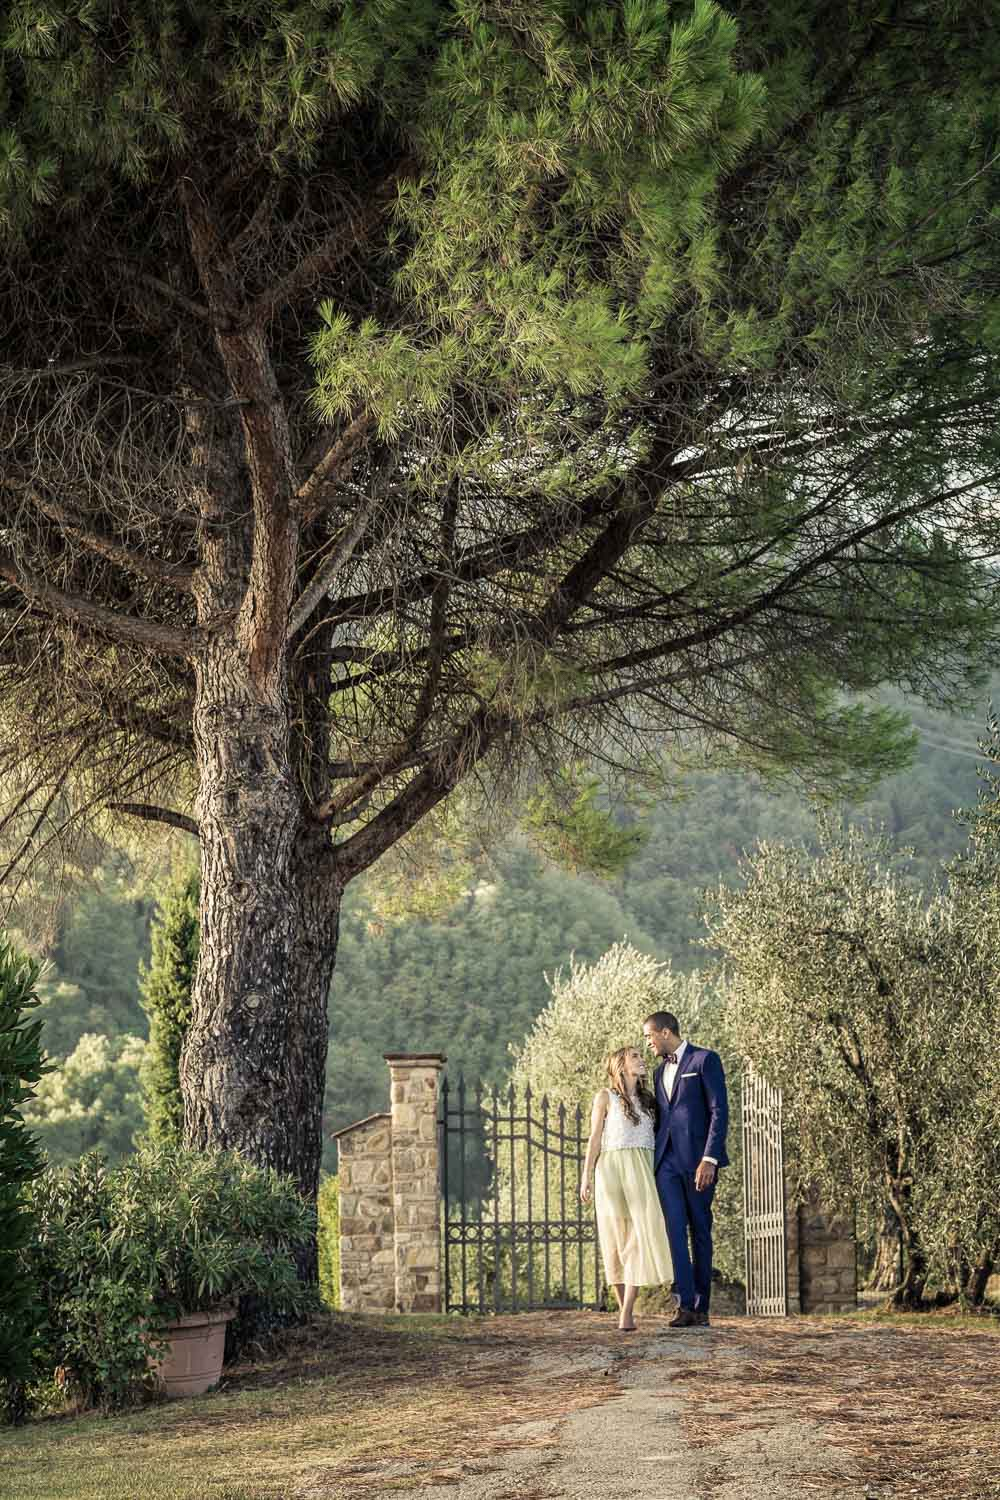 wedding photo of a bride and groom under a tree in Tuscany.